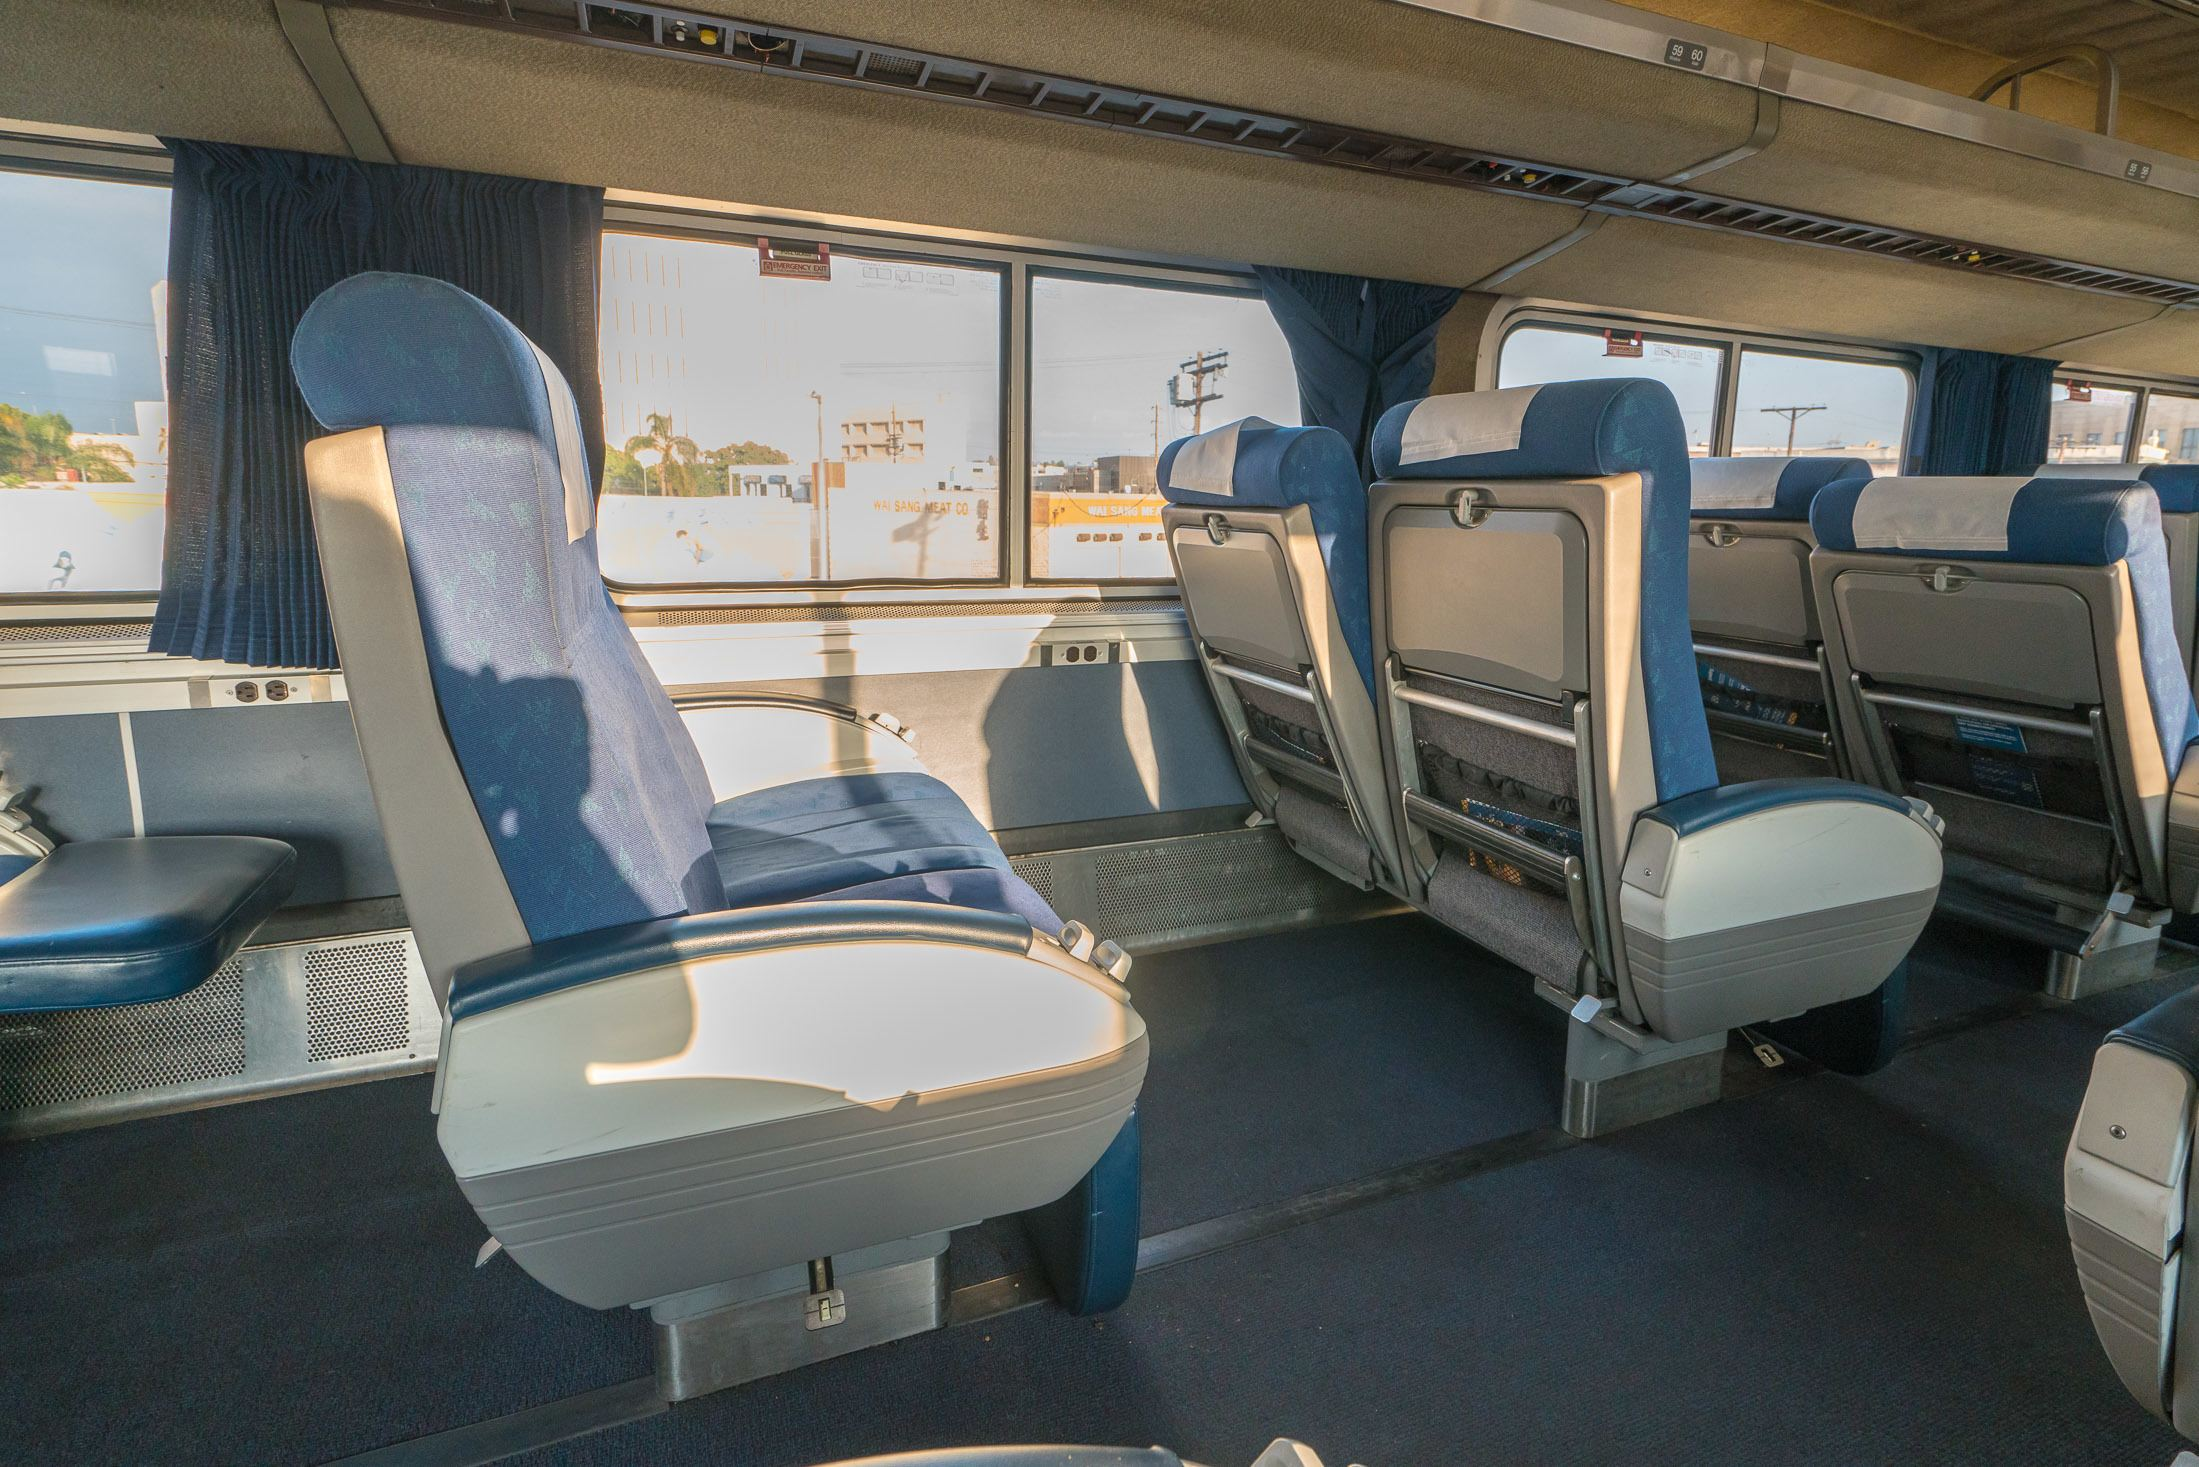 Seats in Amtrak business class on the Pacific Surfliner train